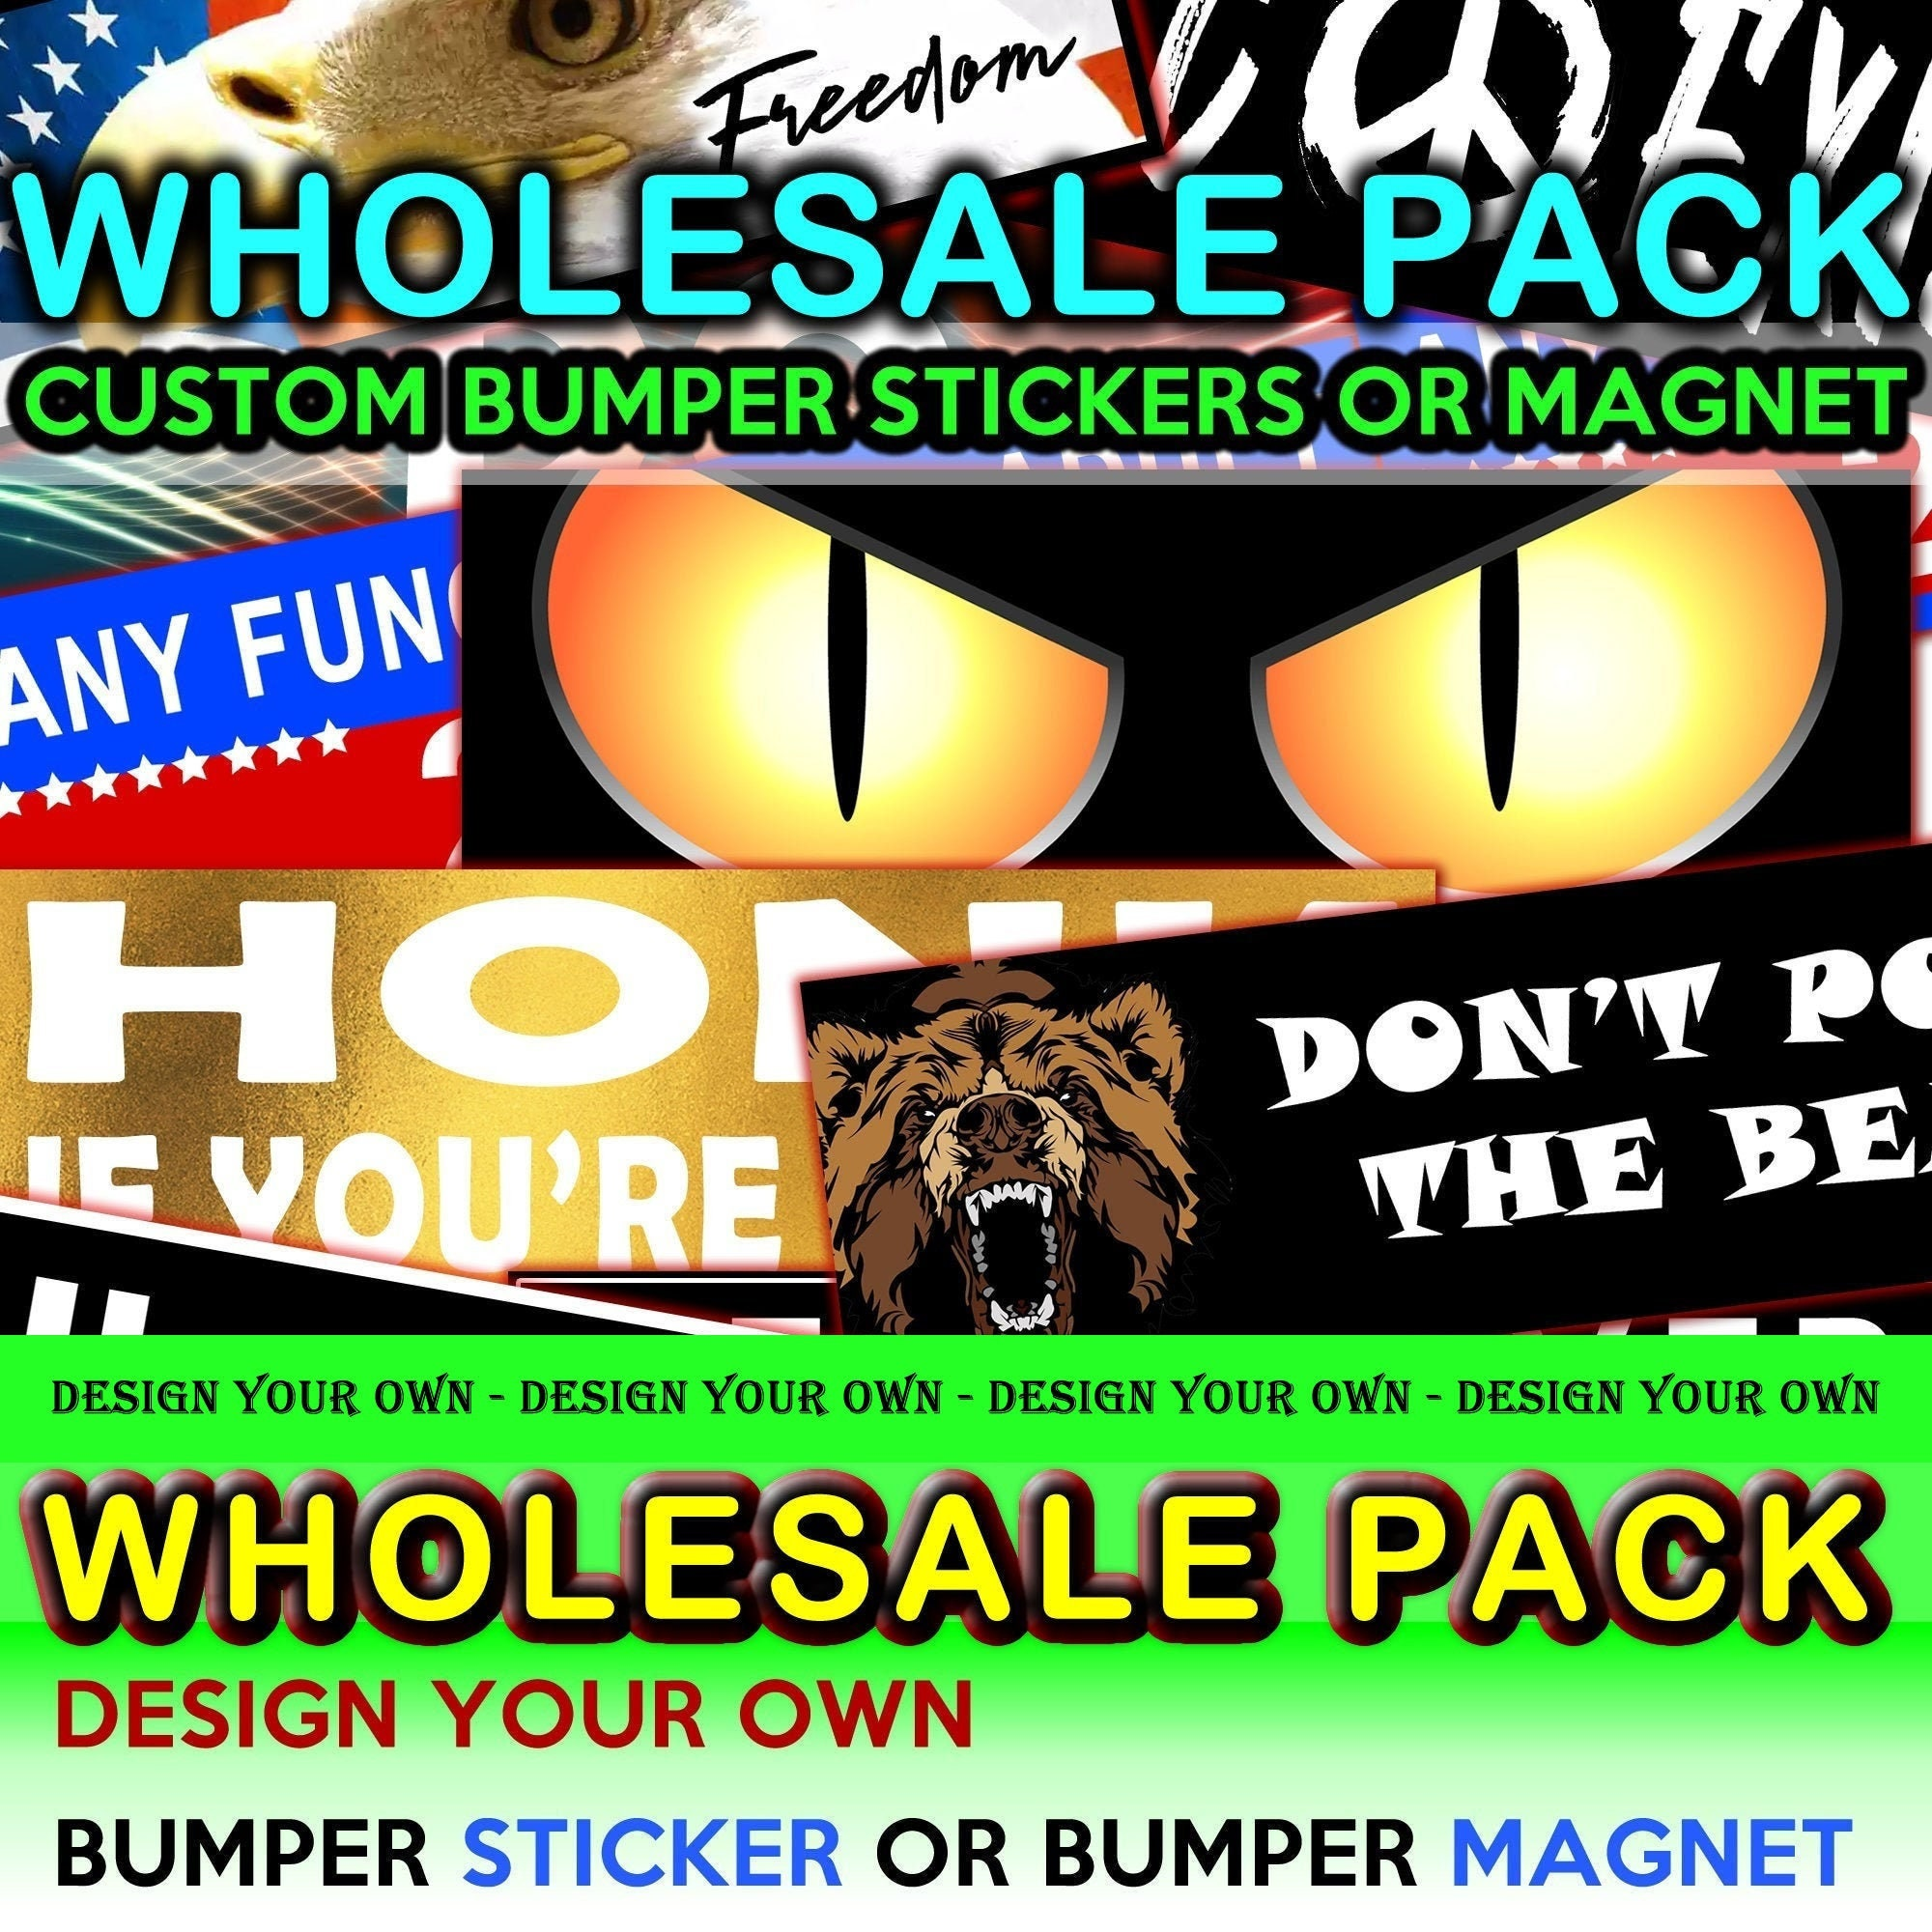 CAD$31.79 - 4X Wholesale Pack ANY 10 x 3 Bumper Sticker or Magnetic Bumper Sticker or customize your own bulk order